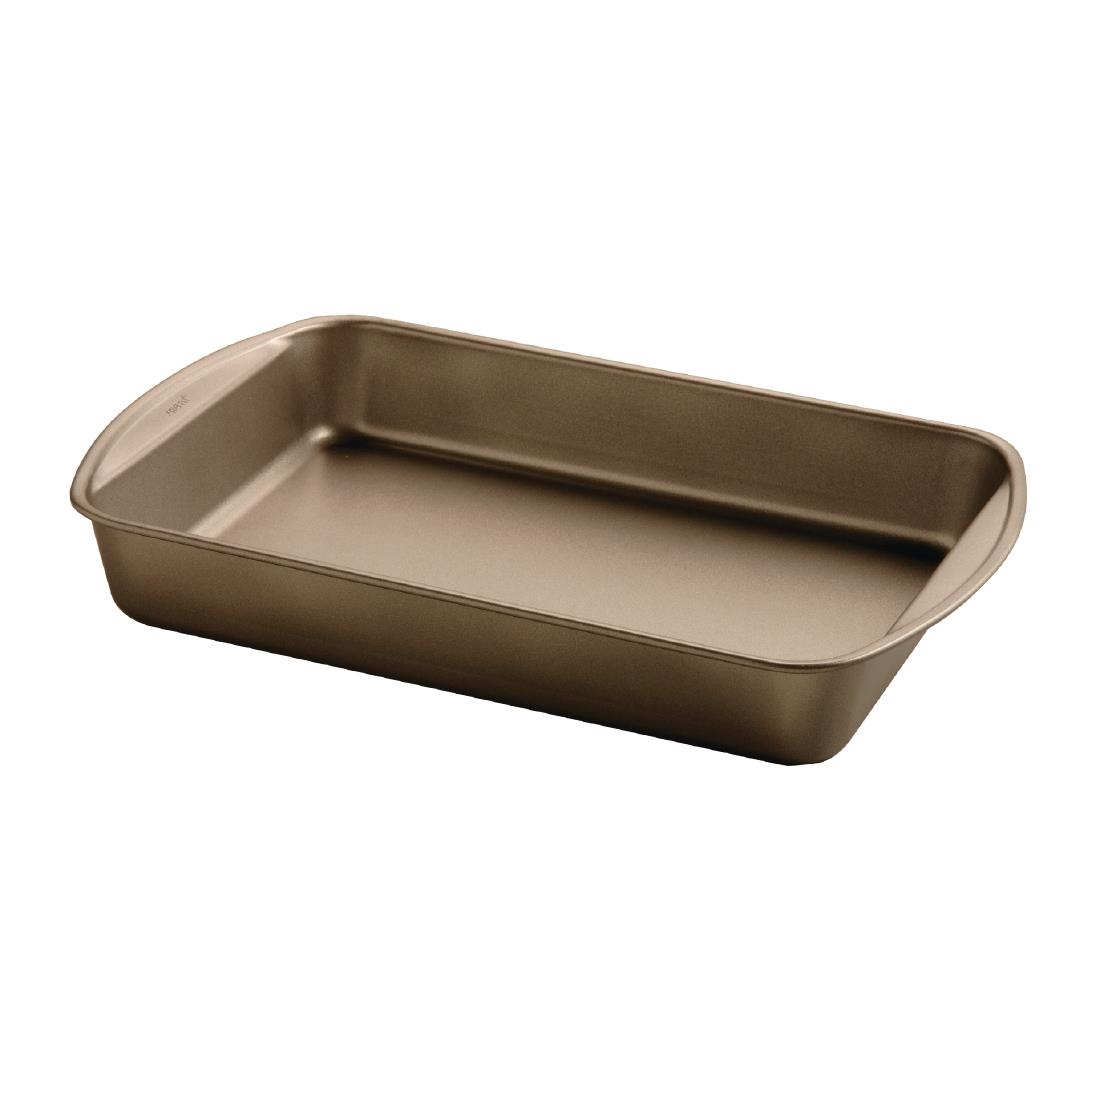 Image of Avanti Non Stick Roasting Pan 320mm